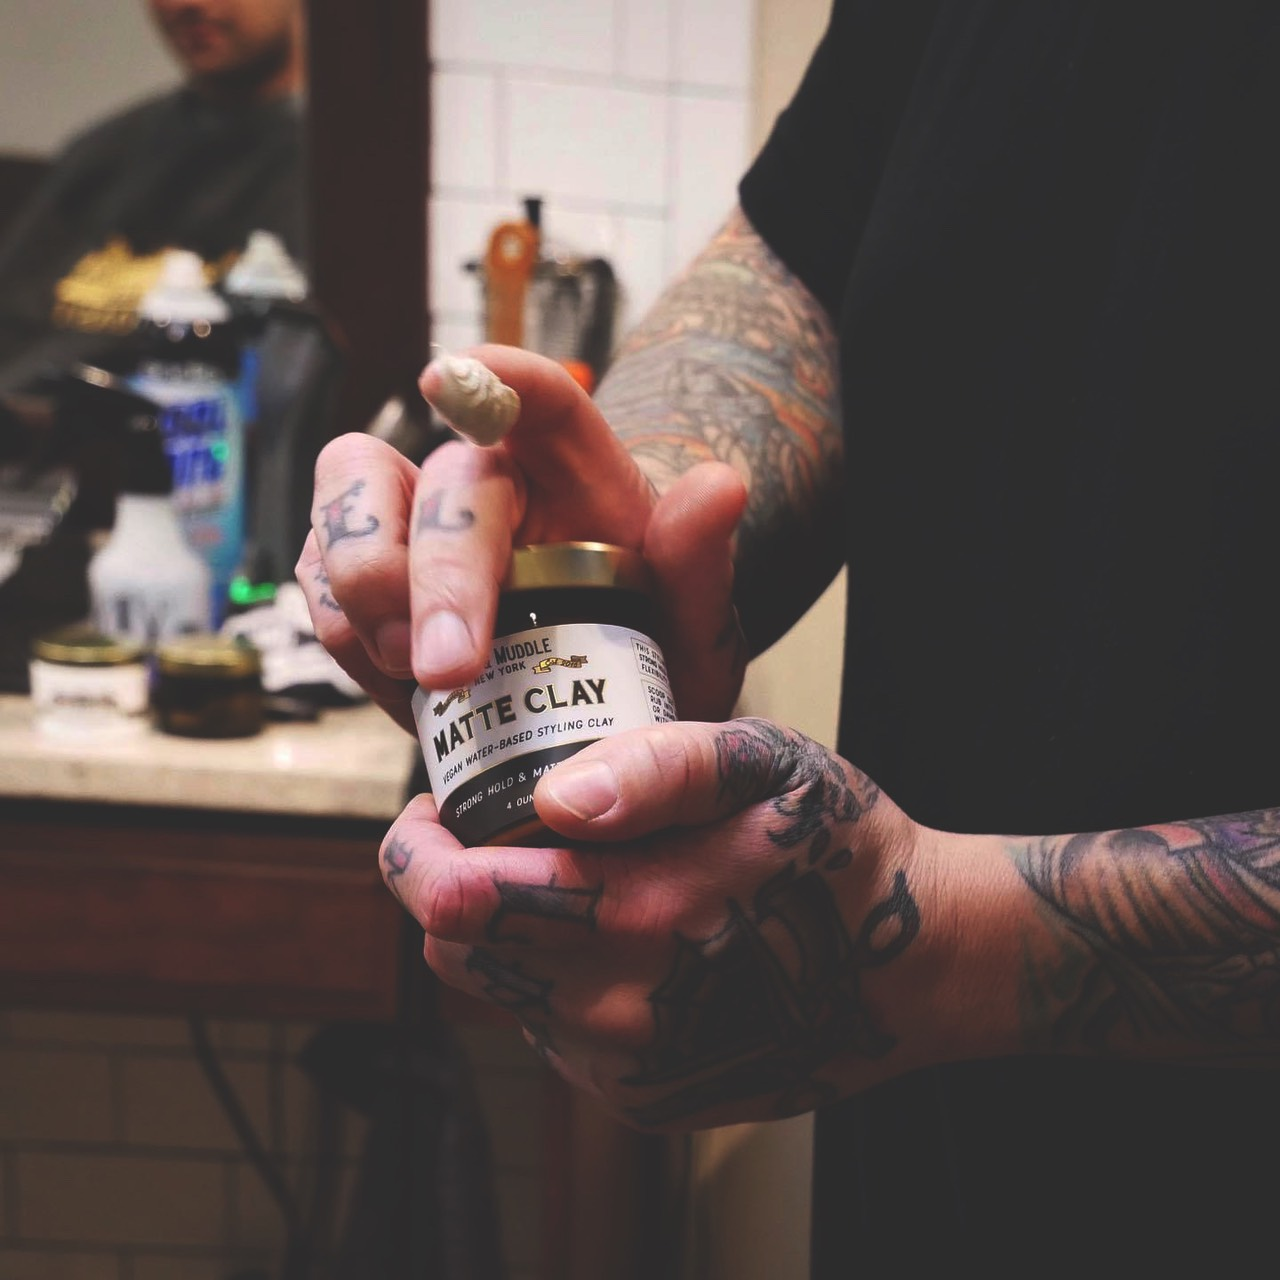 Pomade Matte Clay Root and Muddle